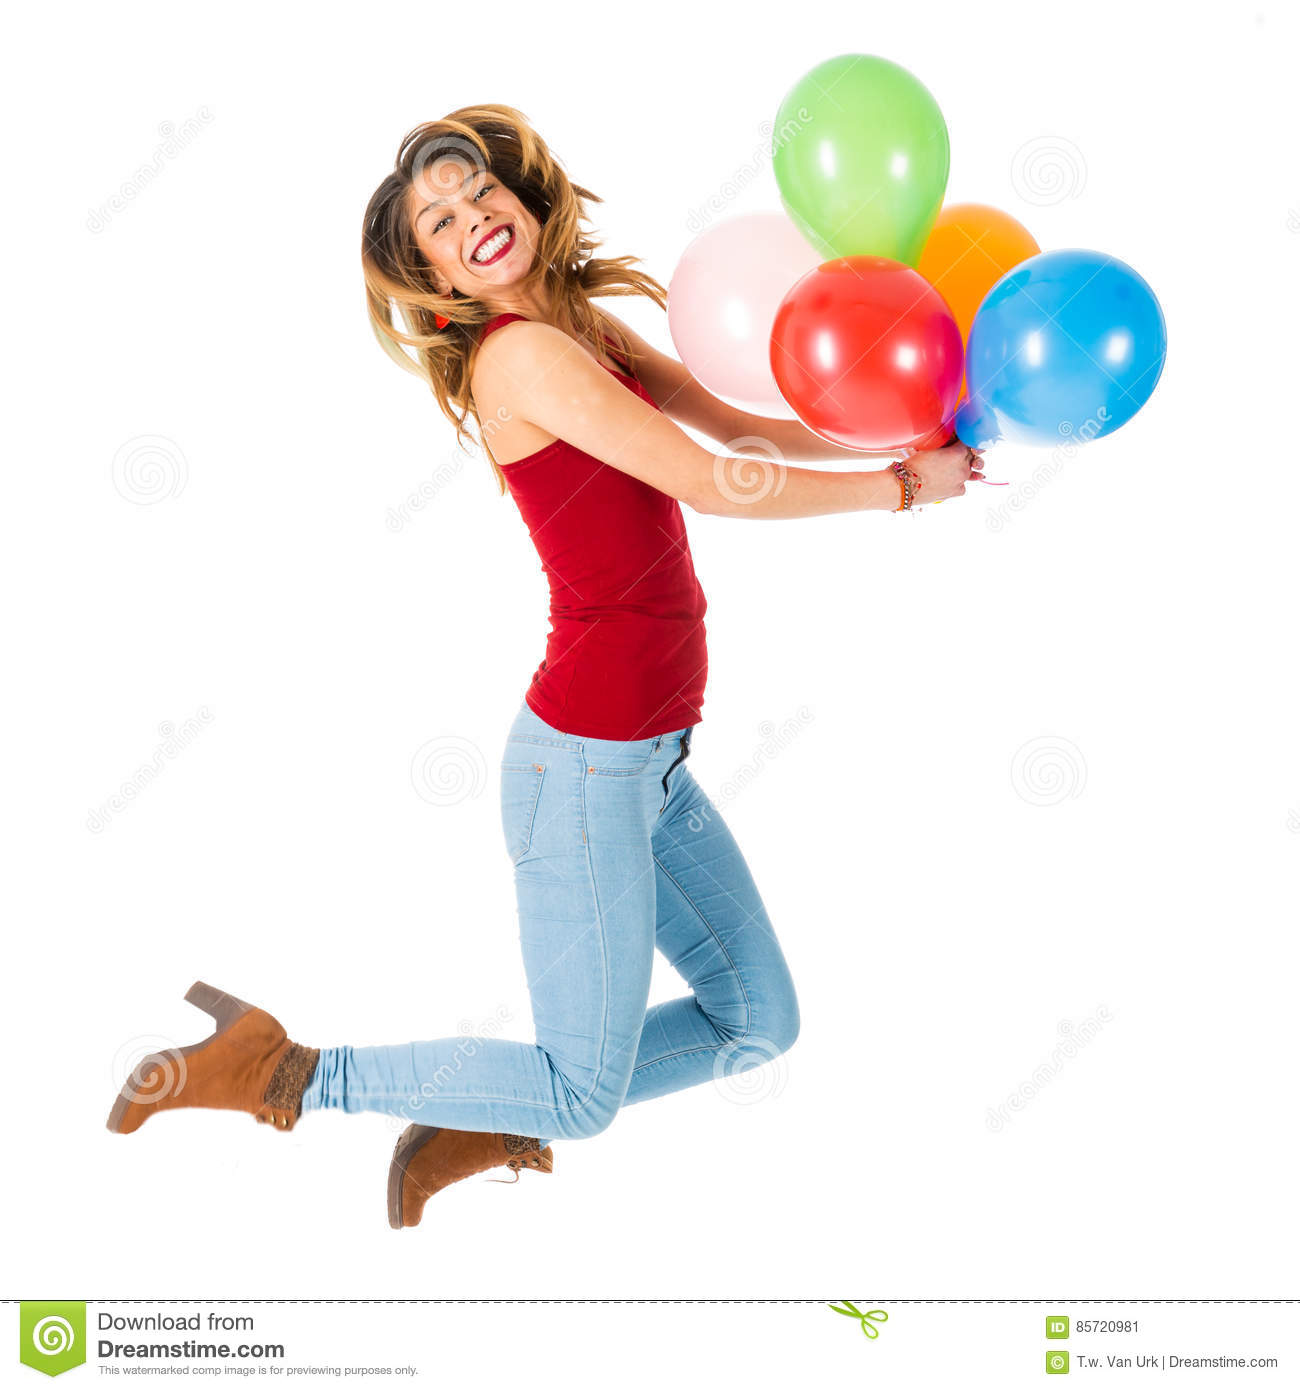 Pretty woman jumping with olorful balloons isolated on white background